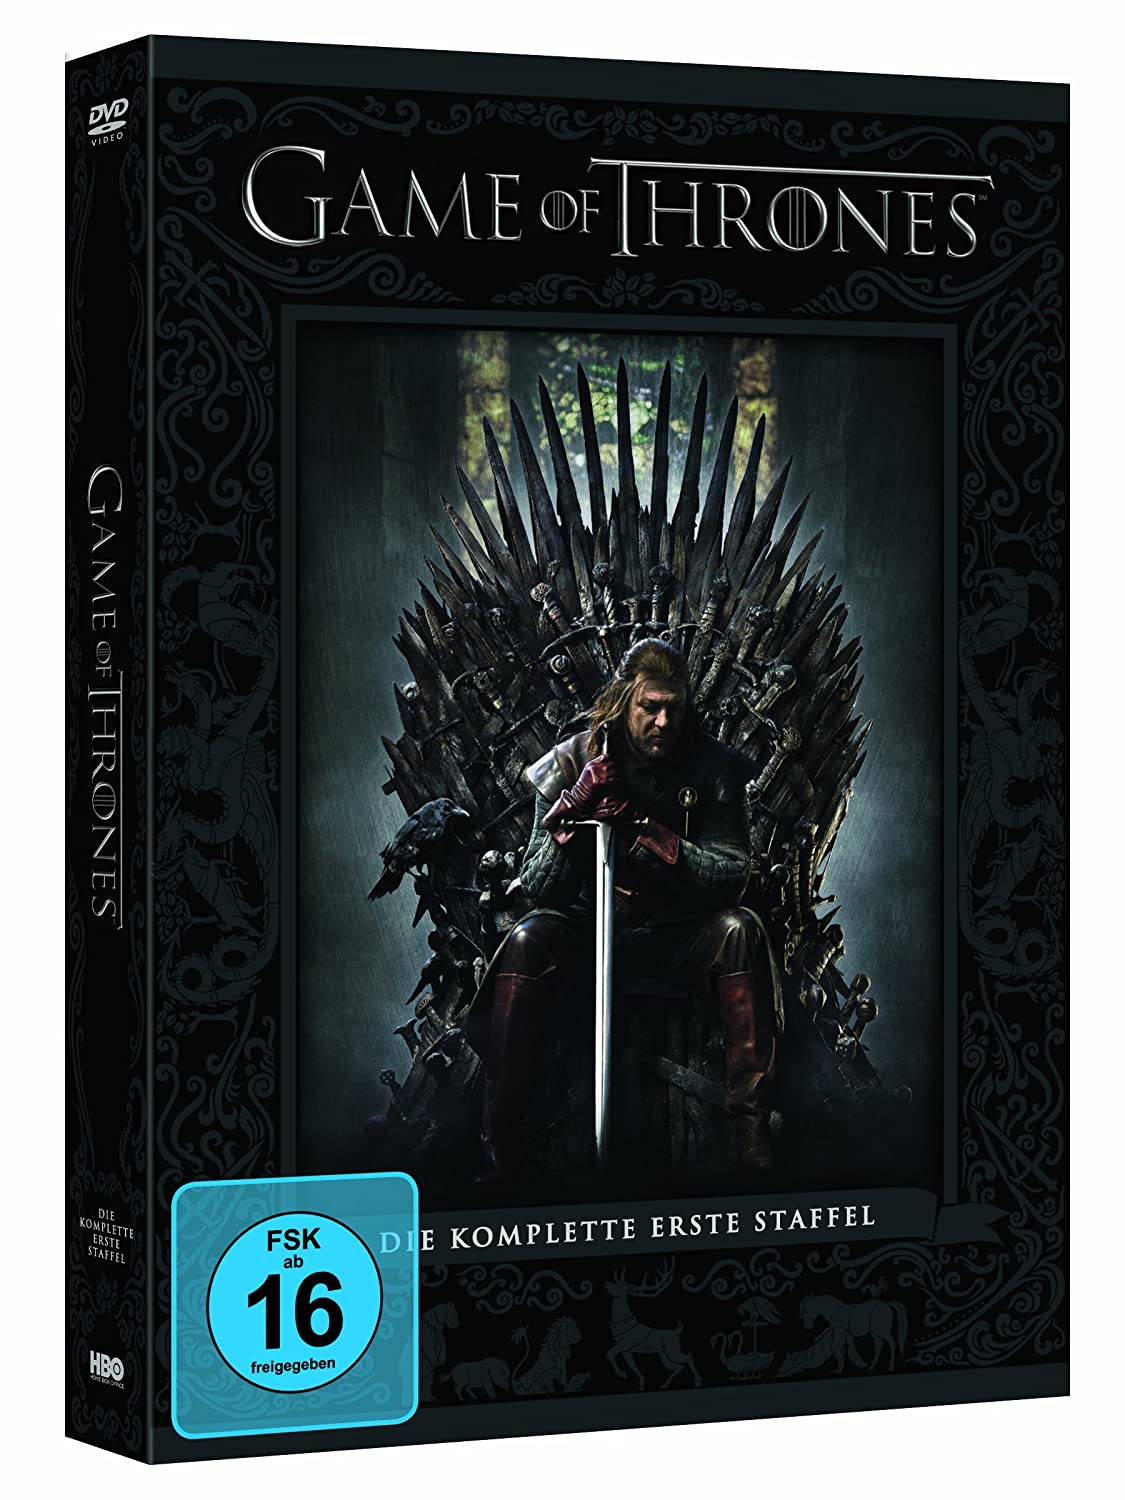 Game of Thrones - Die komplette erste Staffel Alemania DVD: Amazon.es: Sean Bean, Mark Addy, Nikolaj Coster-Waldau, Michelle Fairley, Lena Headey, ...